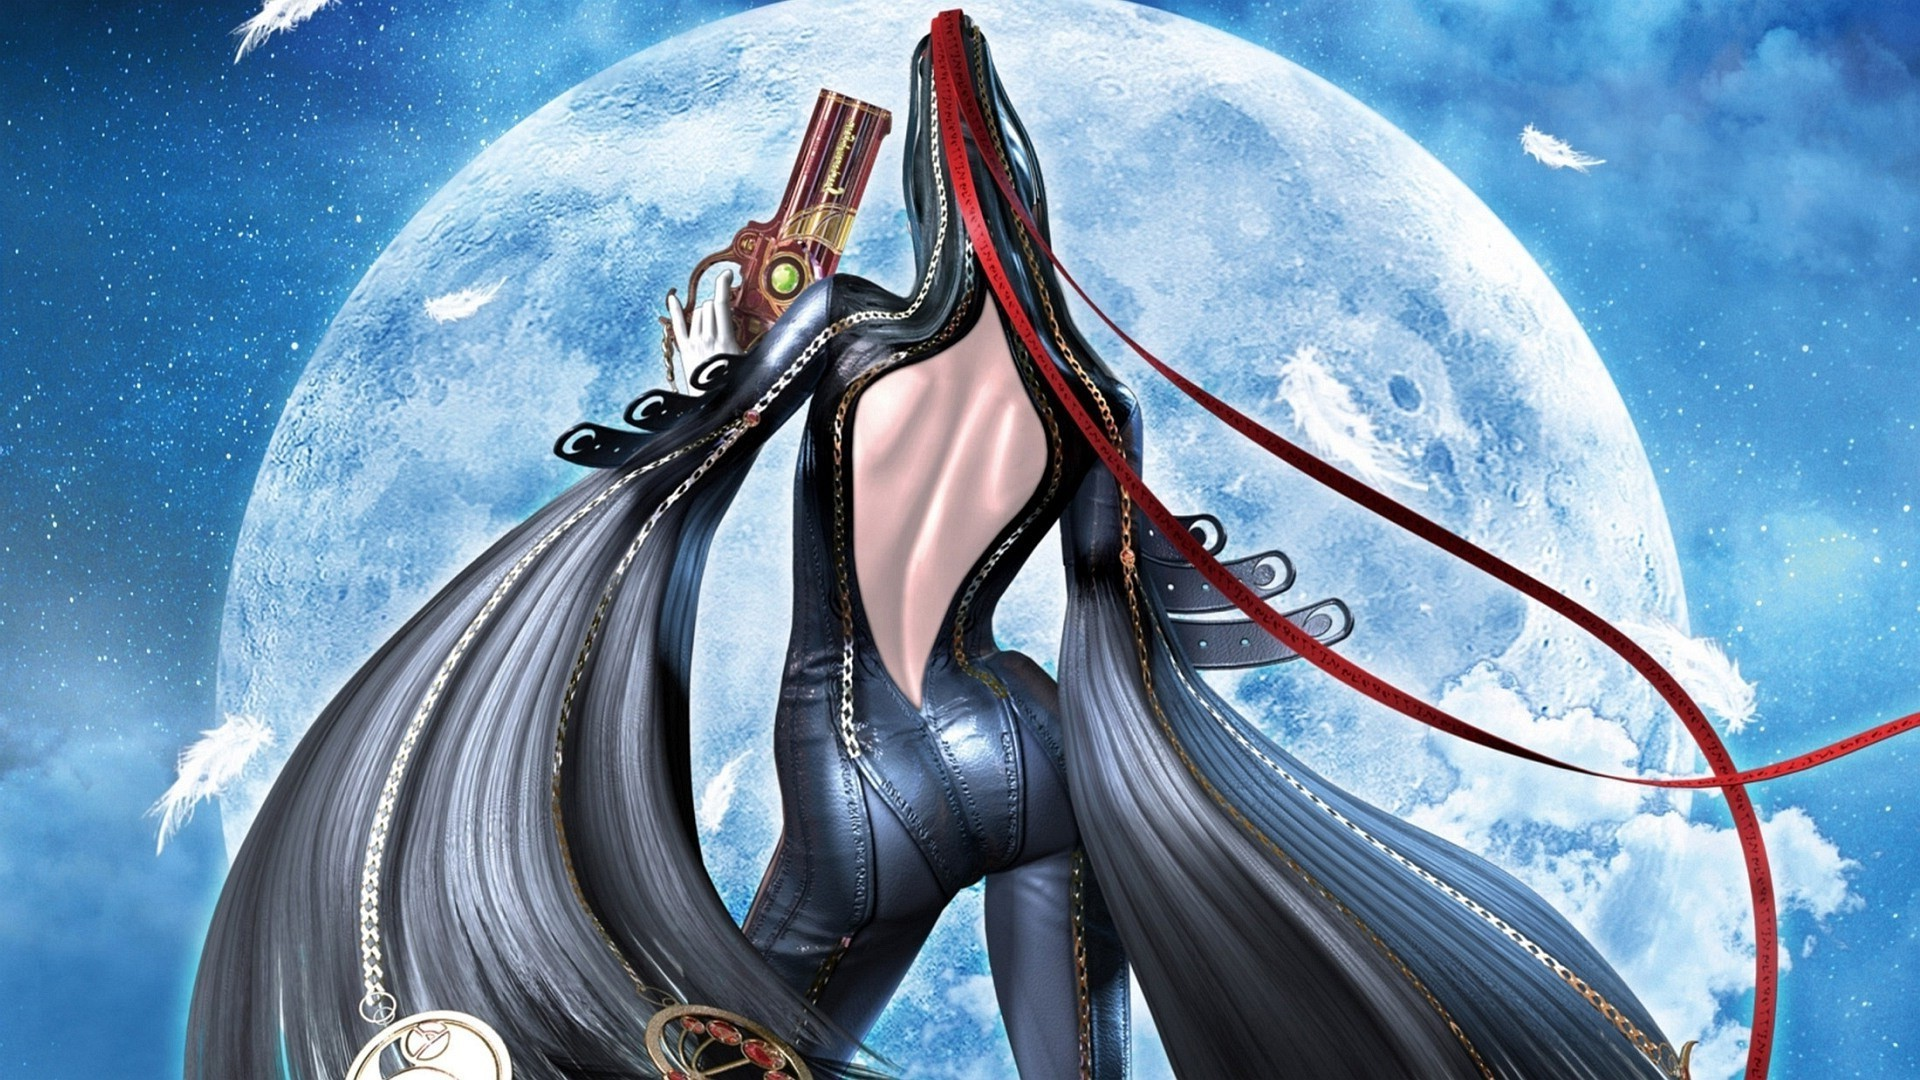 Bayonetta 2 adds new Nintendo costumes, Tag Climax characters .